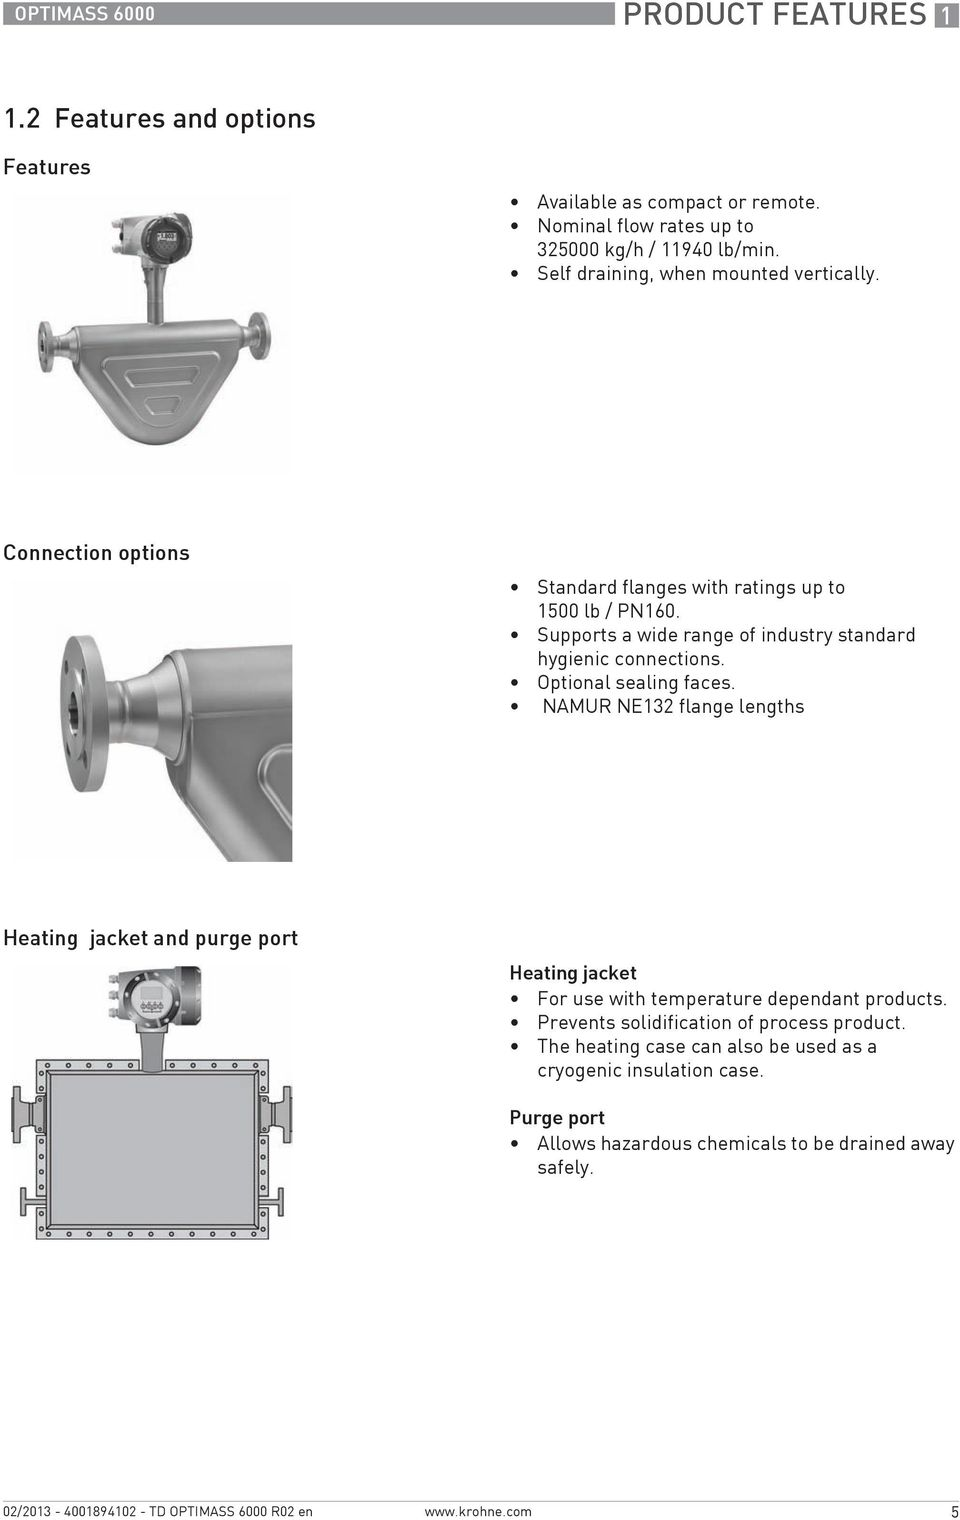 Supports a wide range of industry standard hygienic connections. Optional sealing faces.